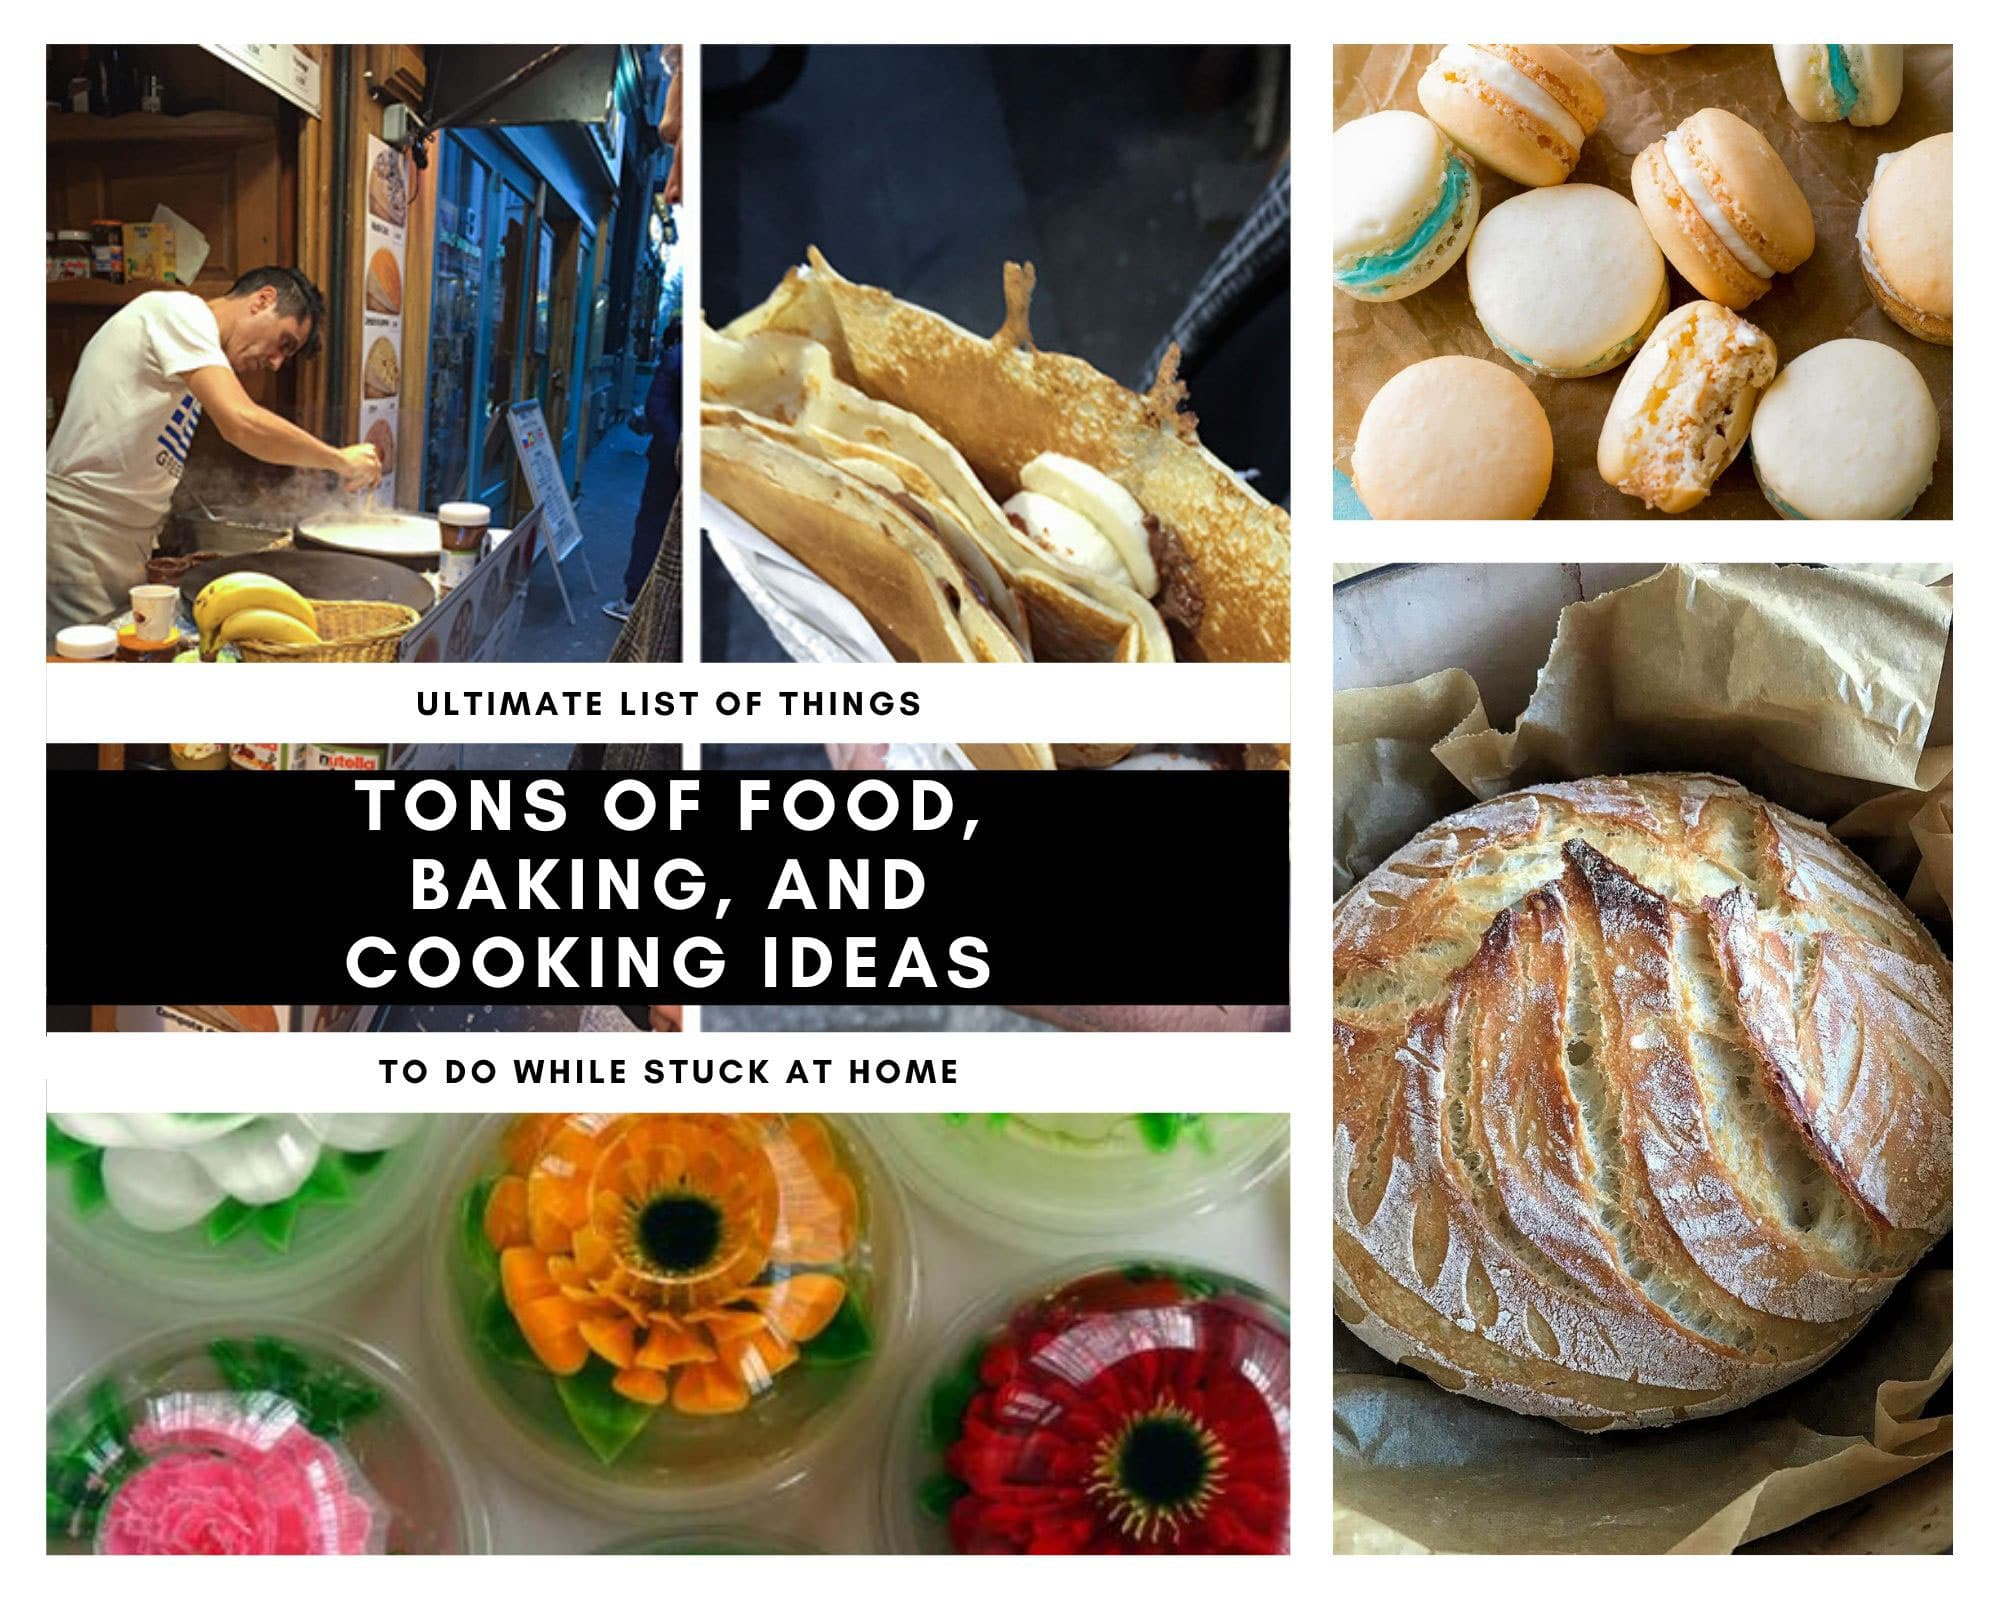 photo collage of food items and text-man making crepes, closeup of folded crepe with bananas, overhead view of neutral colored French macarons, loaf of sourdough bead, orange and red flowers in gelatin domes